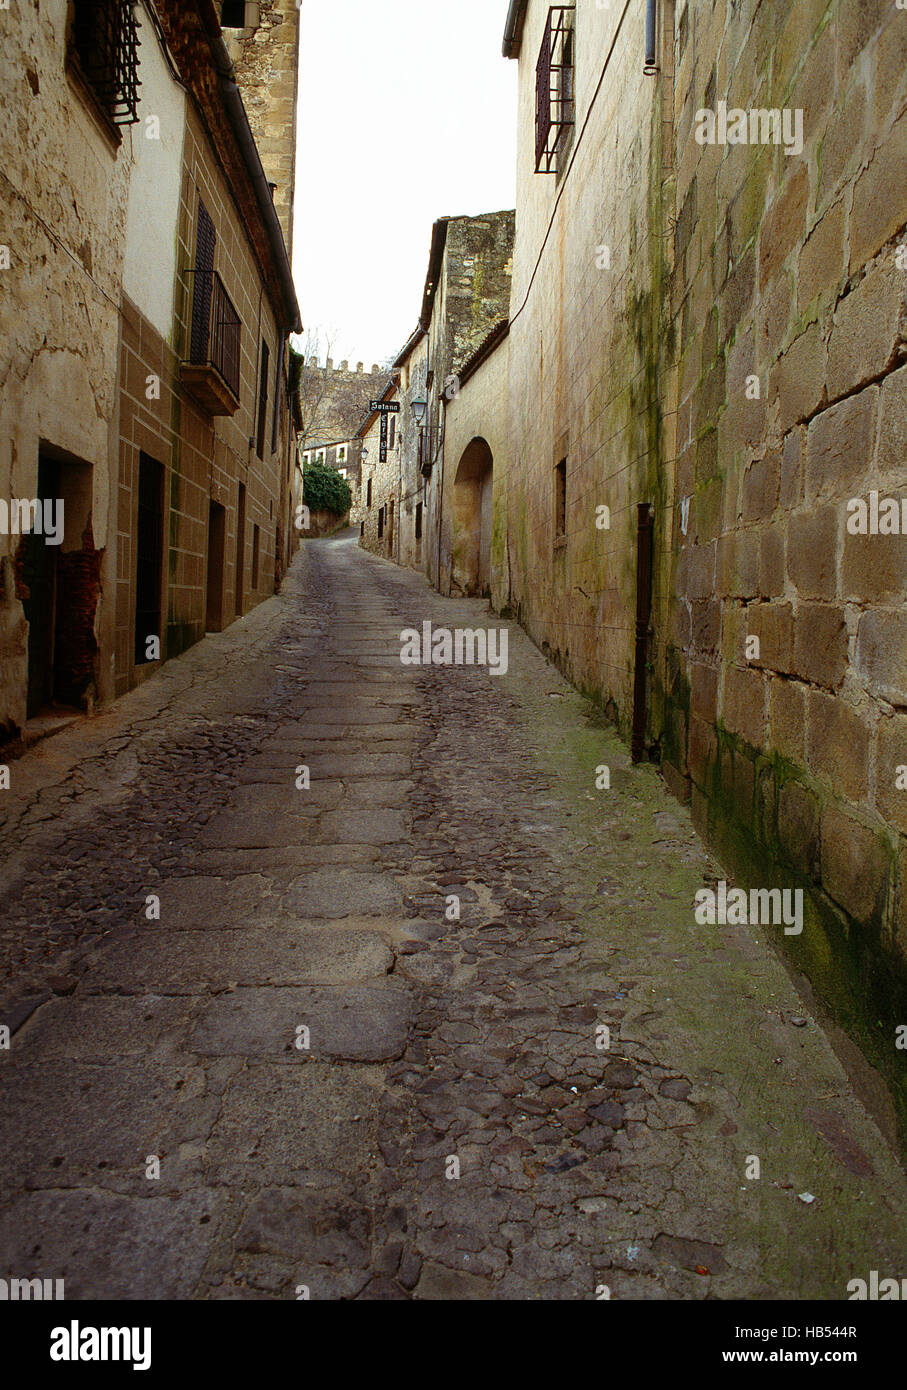 Cobbled street in the old town. Trujillo, Caceres province, Extremadura, Spain. Stock Photo